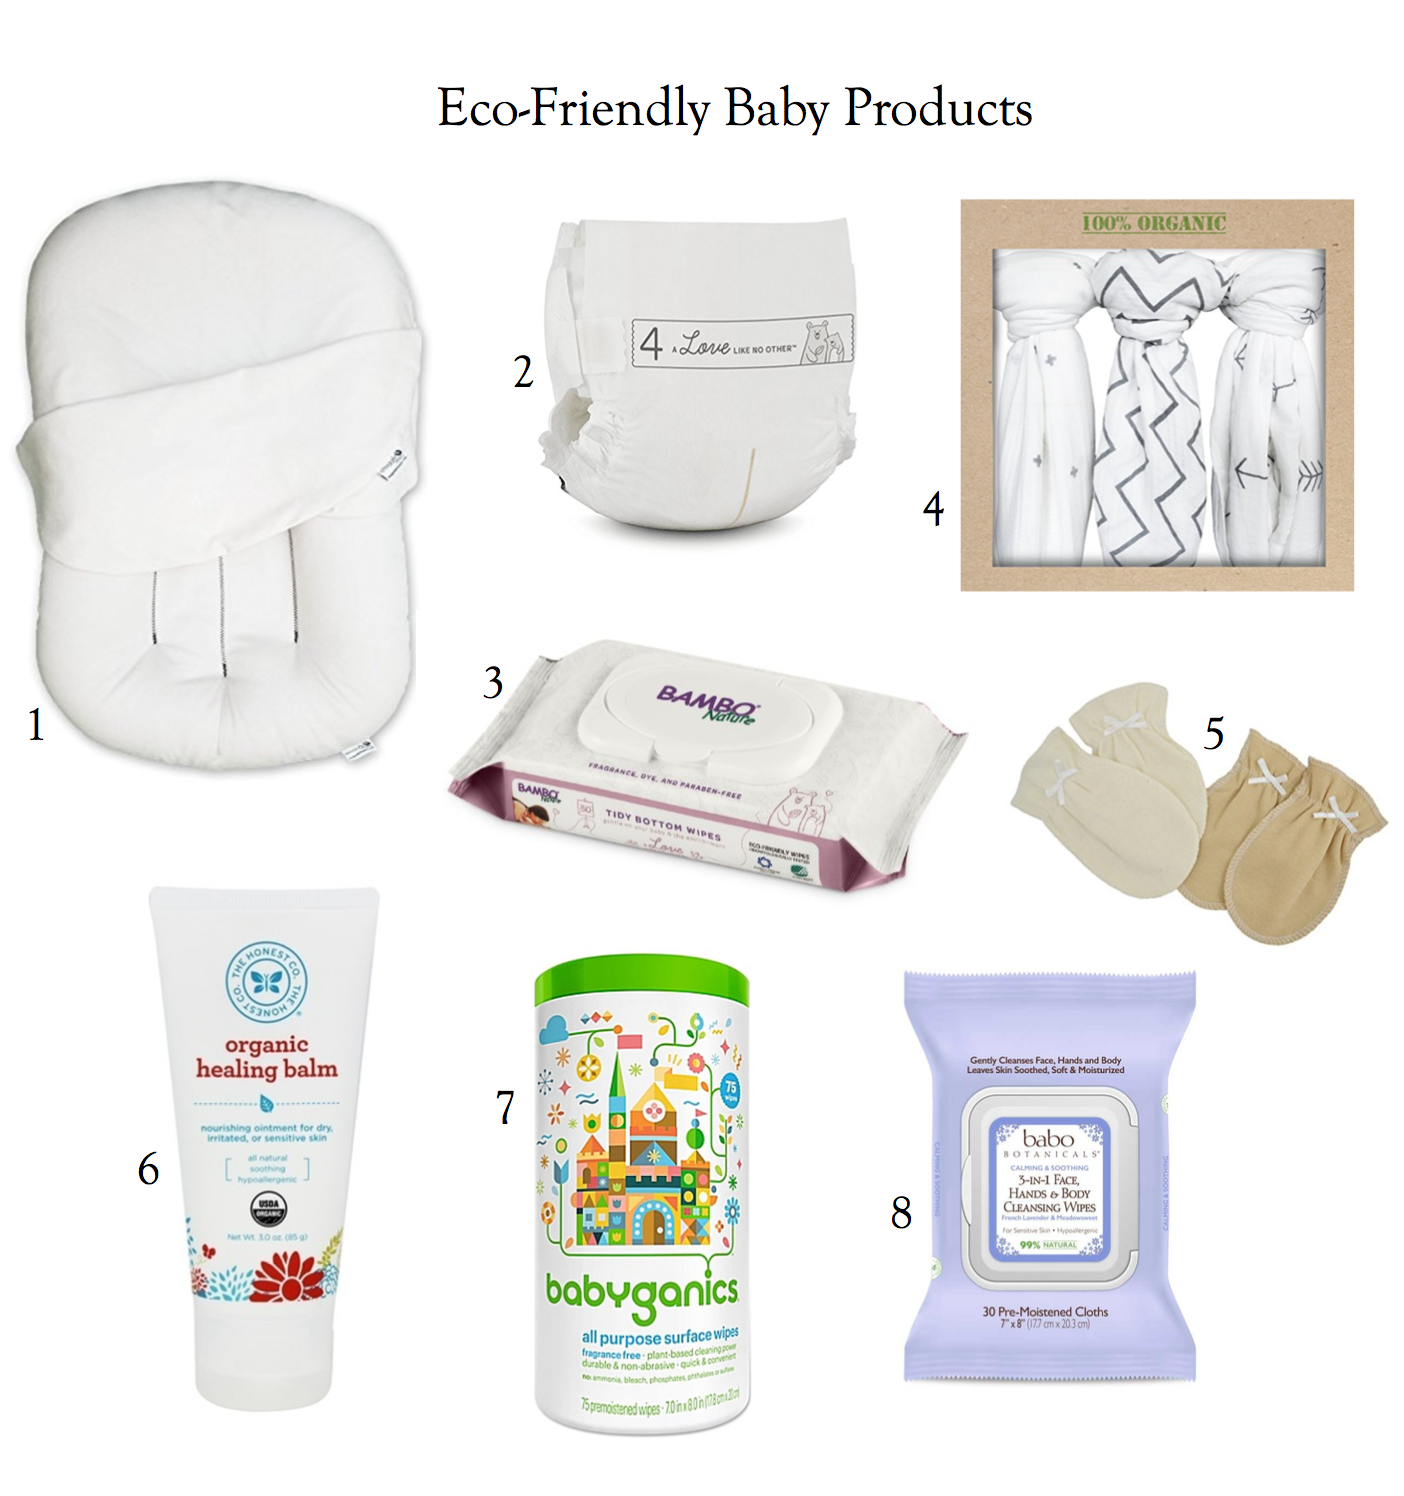 EcoFriendlyBabyProducts